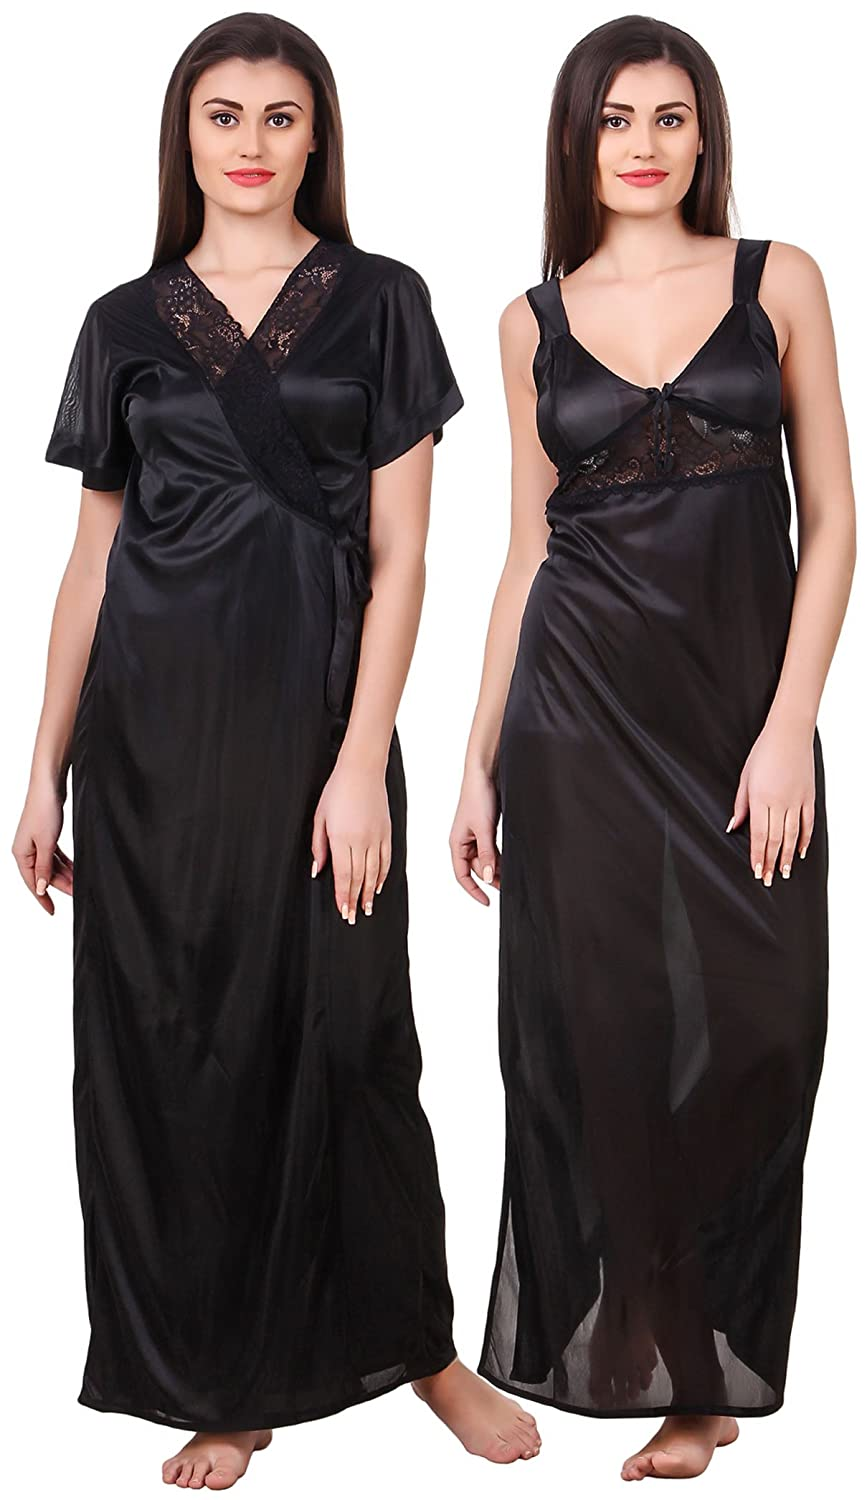 926c063ff2 Fasense Women Satin Nightwear 2 Pc Set of Nighty   Wrap Gown OM007   Amazon.in  Clothing   Accessories